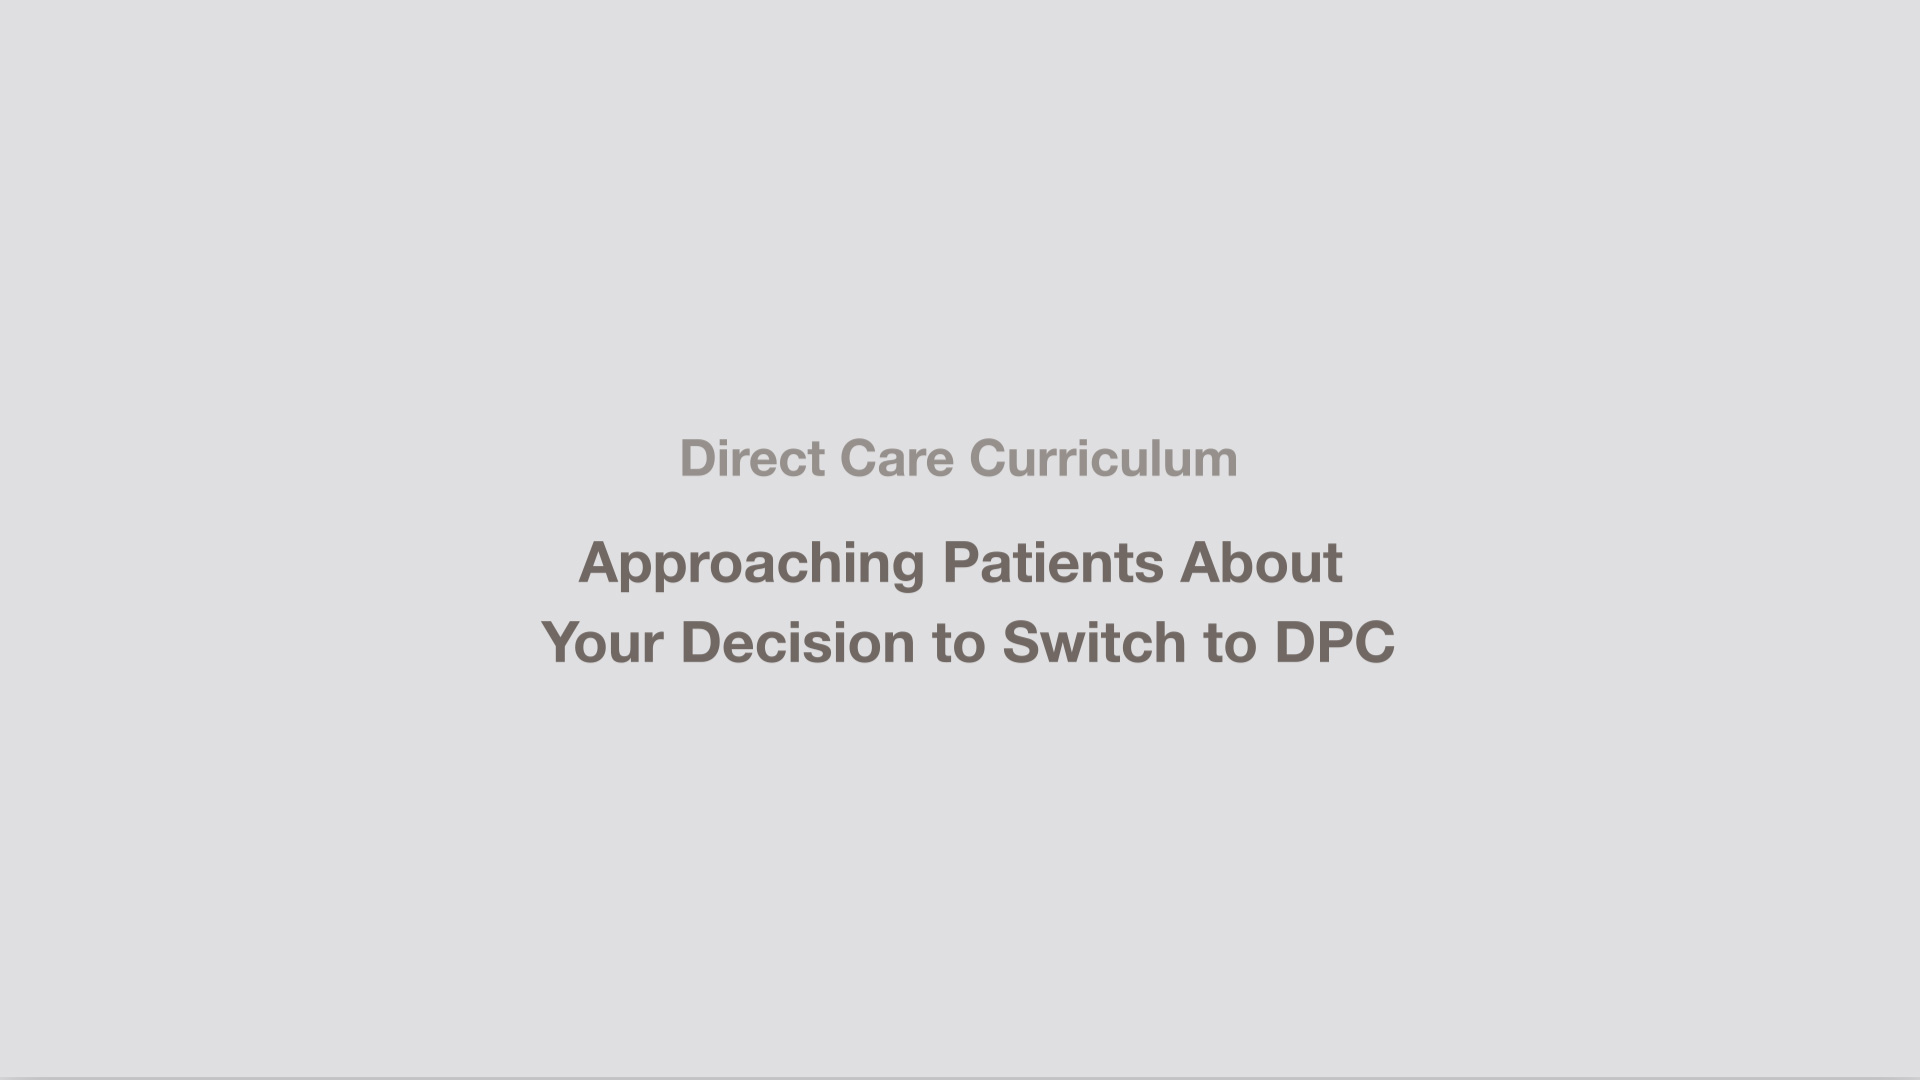 Making the Transition: Approaching Patients About Your Decision to Switch to DPC